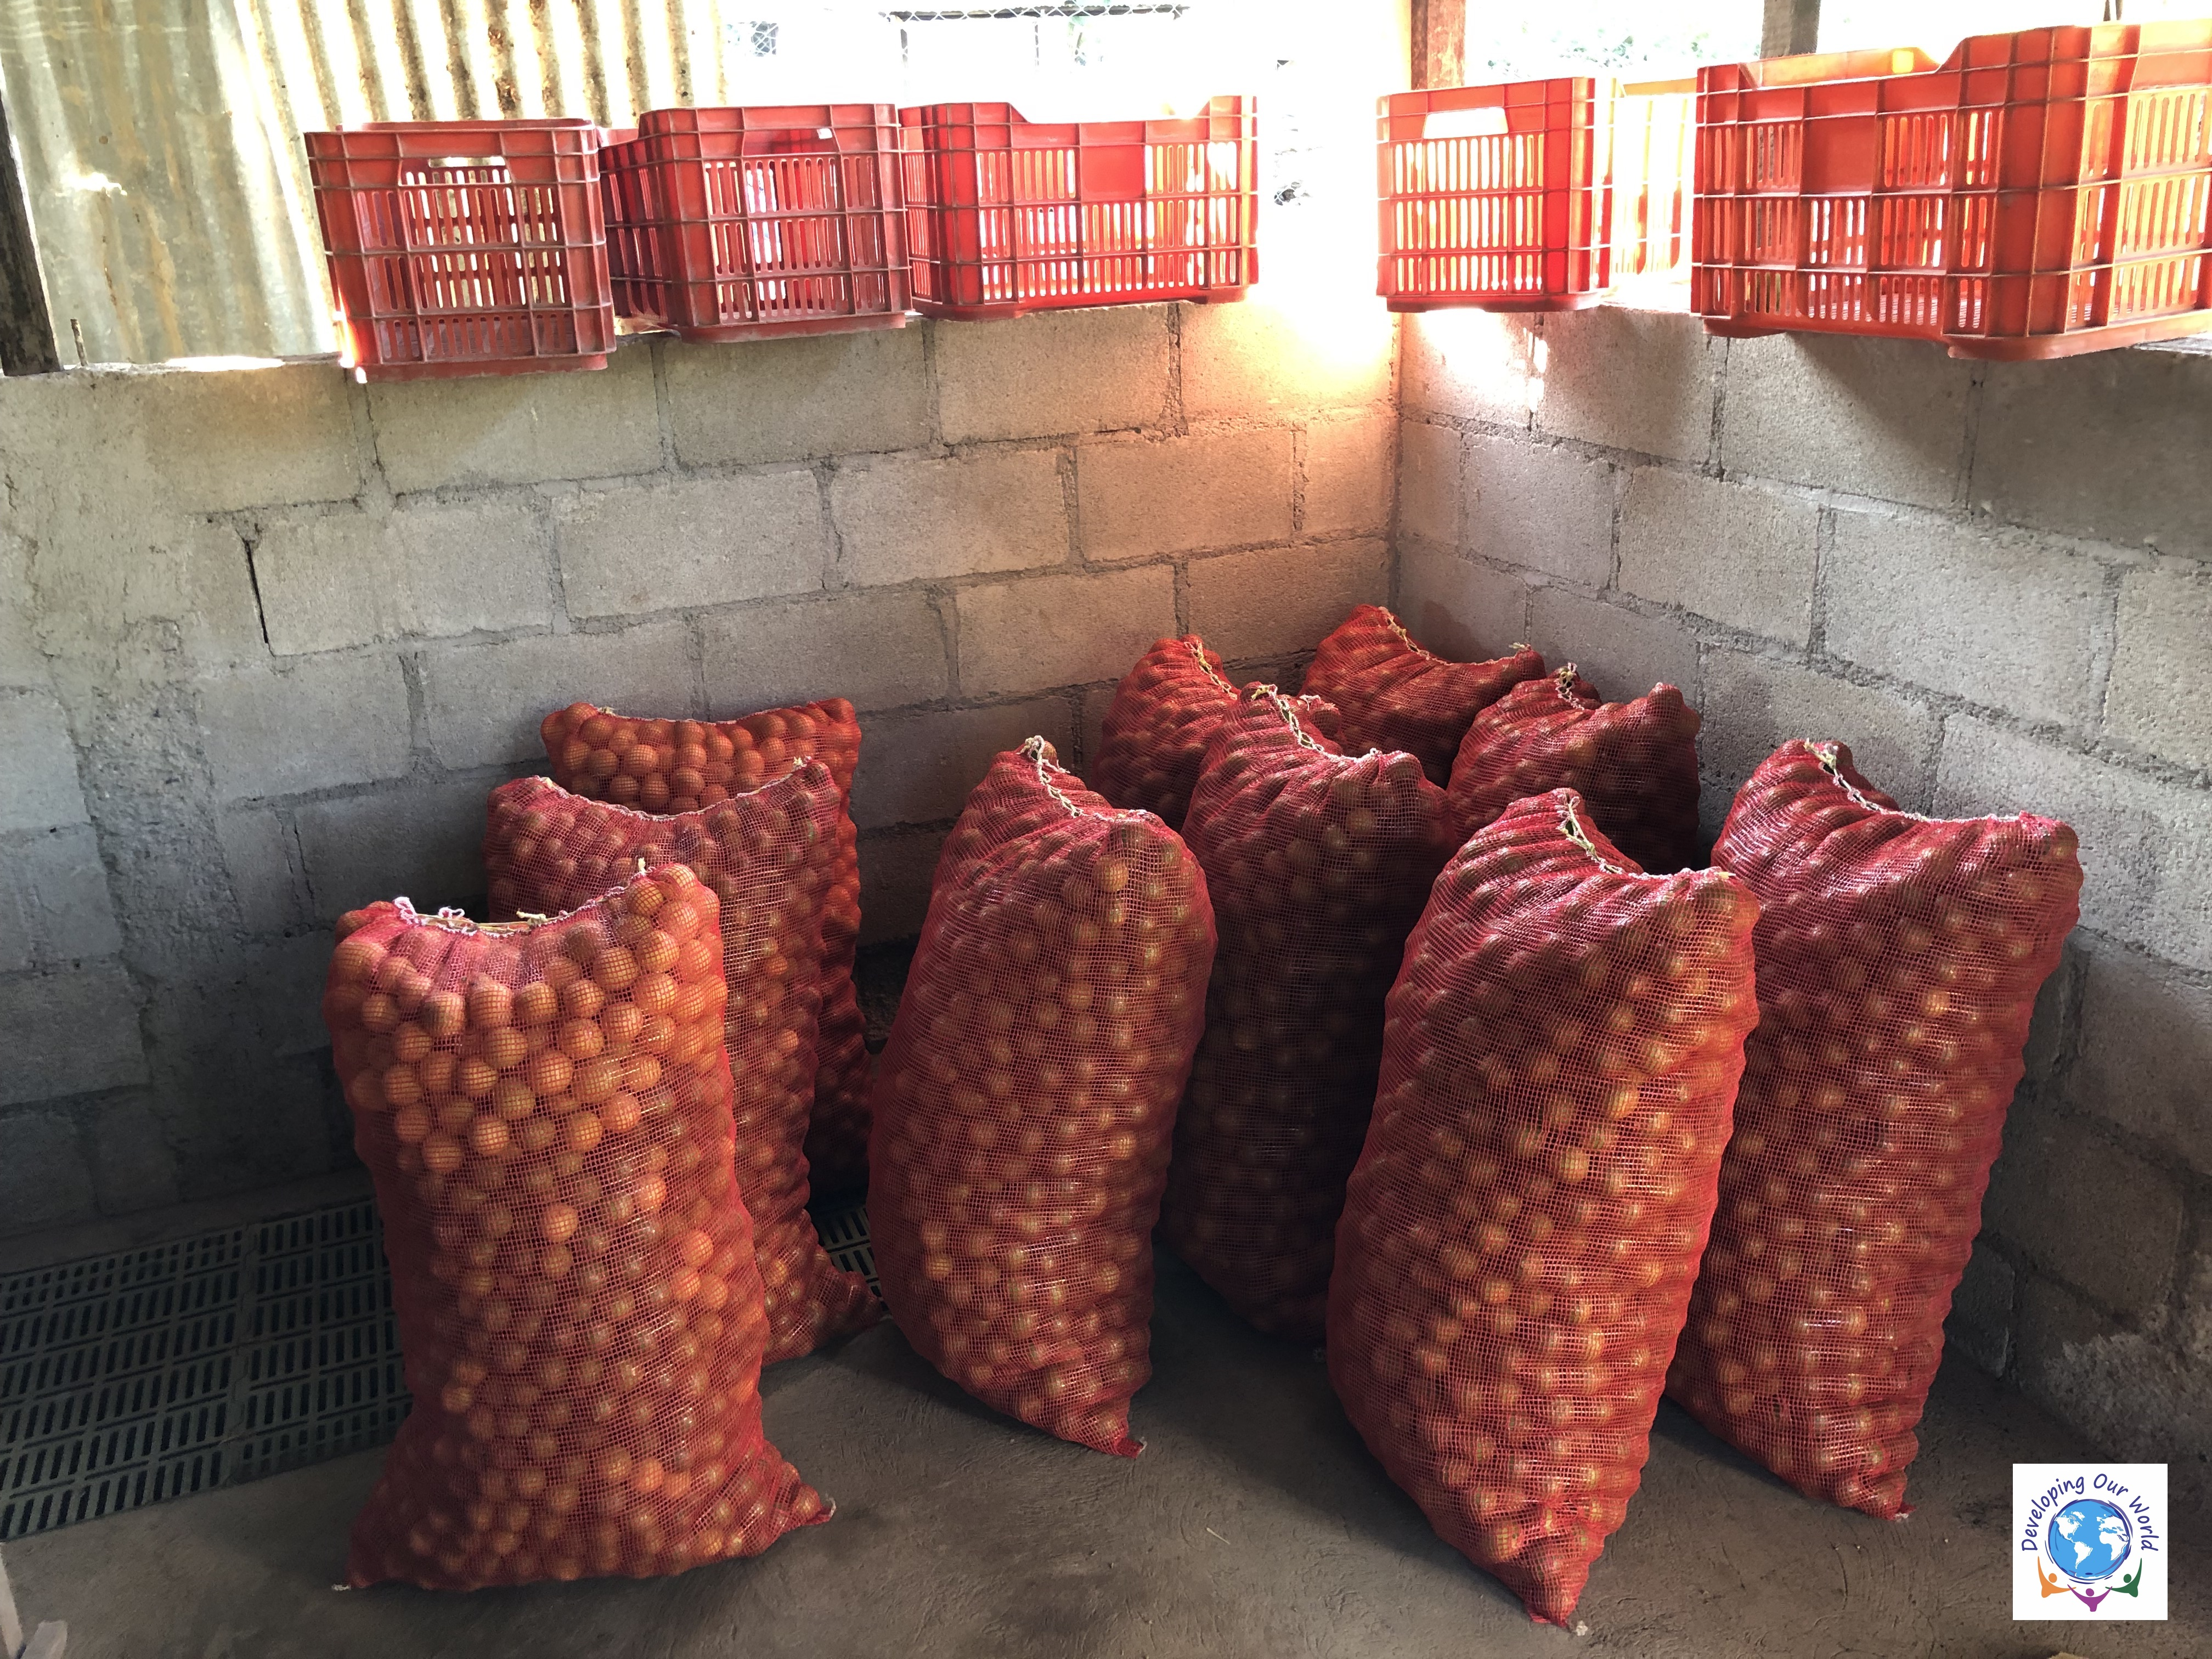 Lemon Harvested and selected, ready for sale